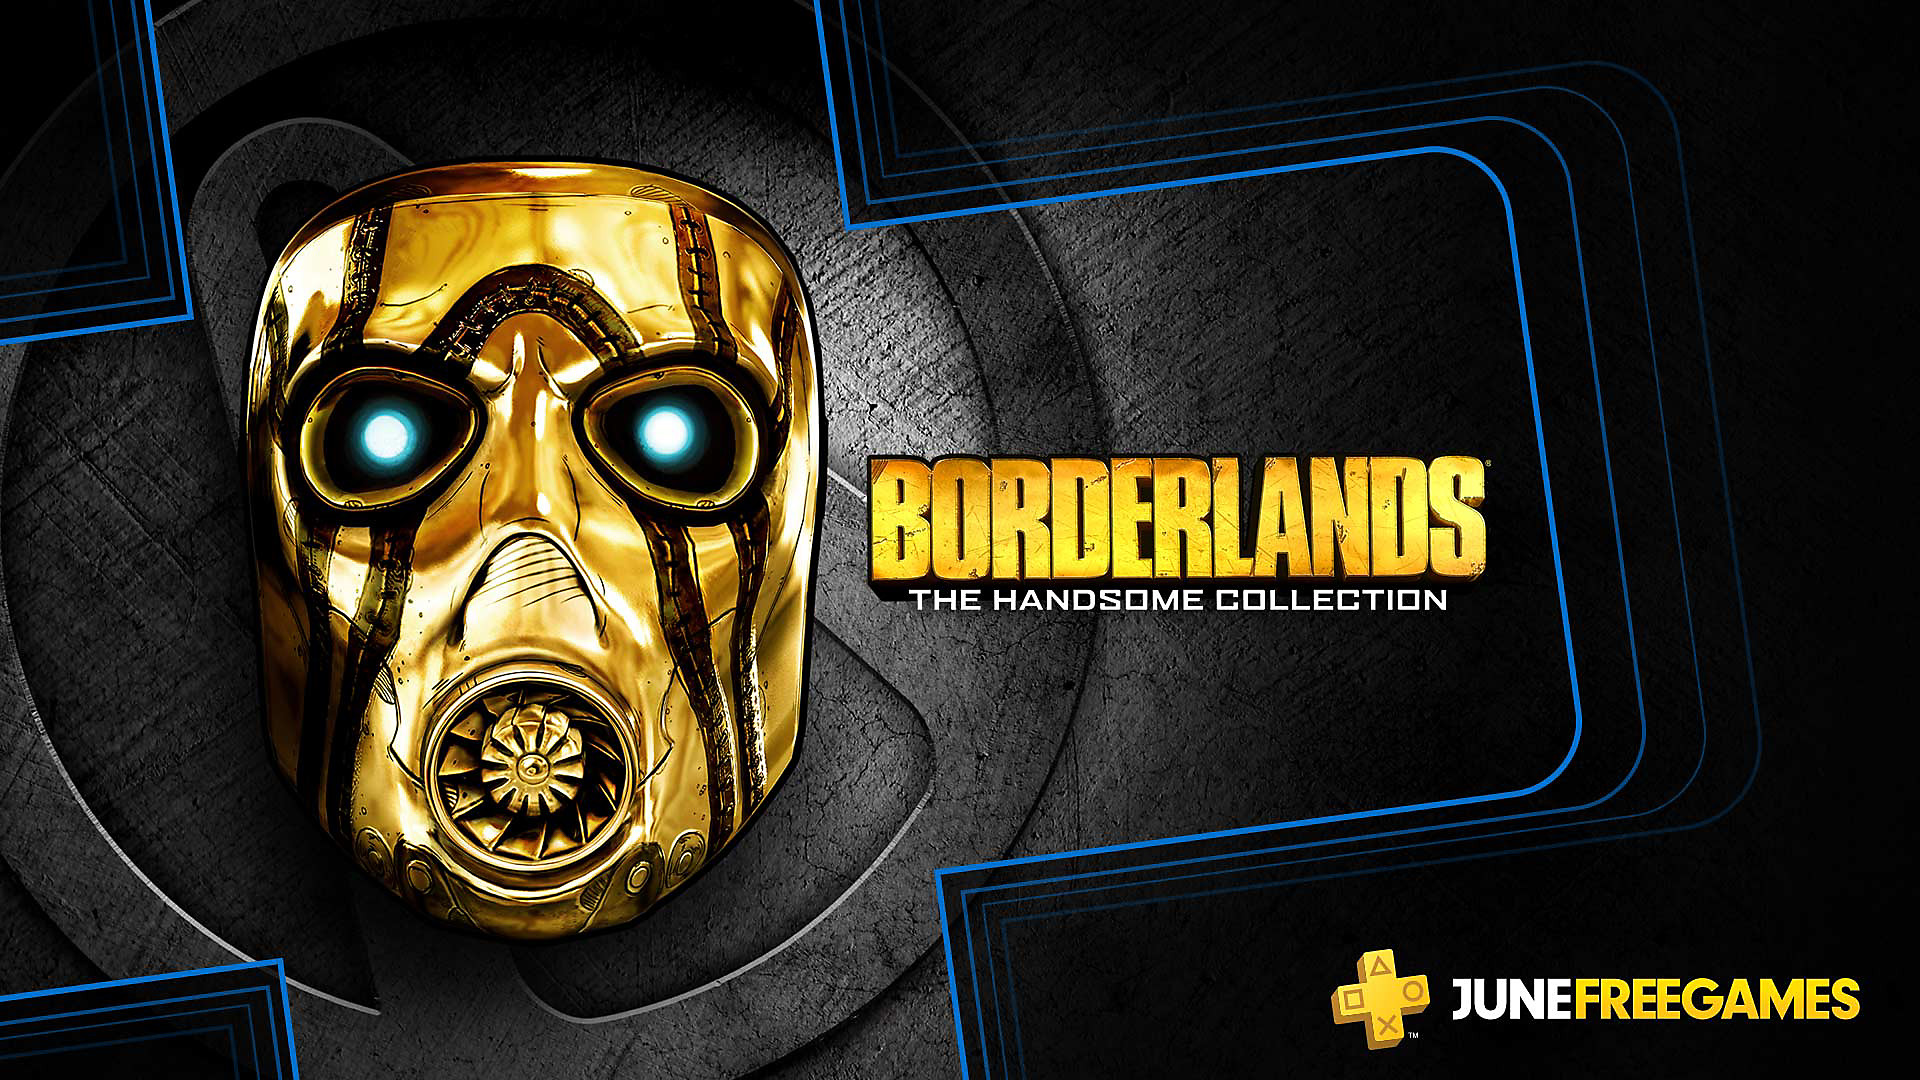 Click here to get Borderlands The Handsome Collection free from the PlayStation Store for PlayStation Plus members